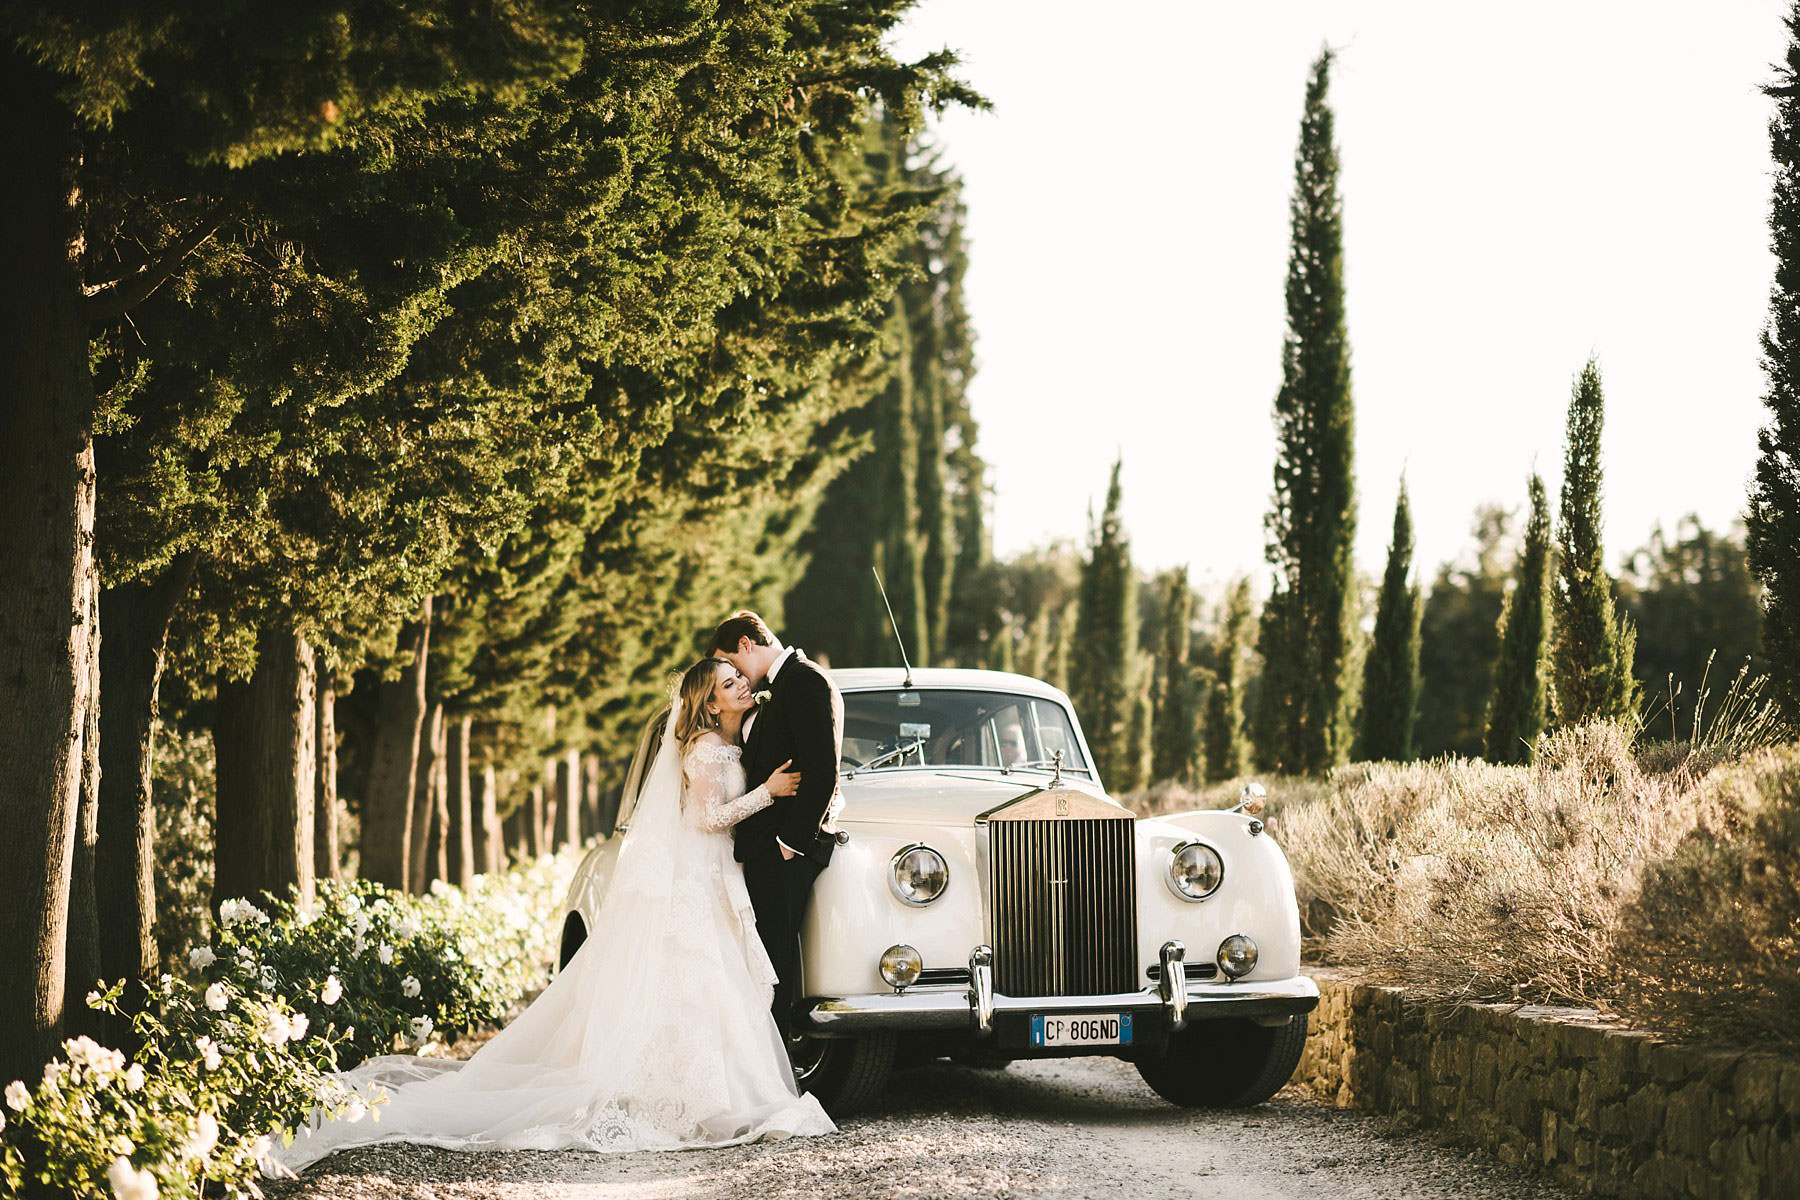 Unforgettable bride and groom photo at Villa Mangiacane with lovely old vintage Roll Royce car. Bridal dress by Justin Alexander